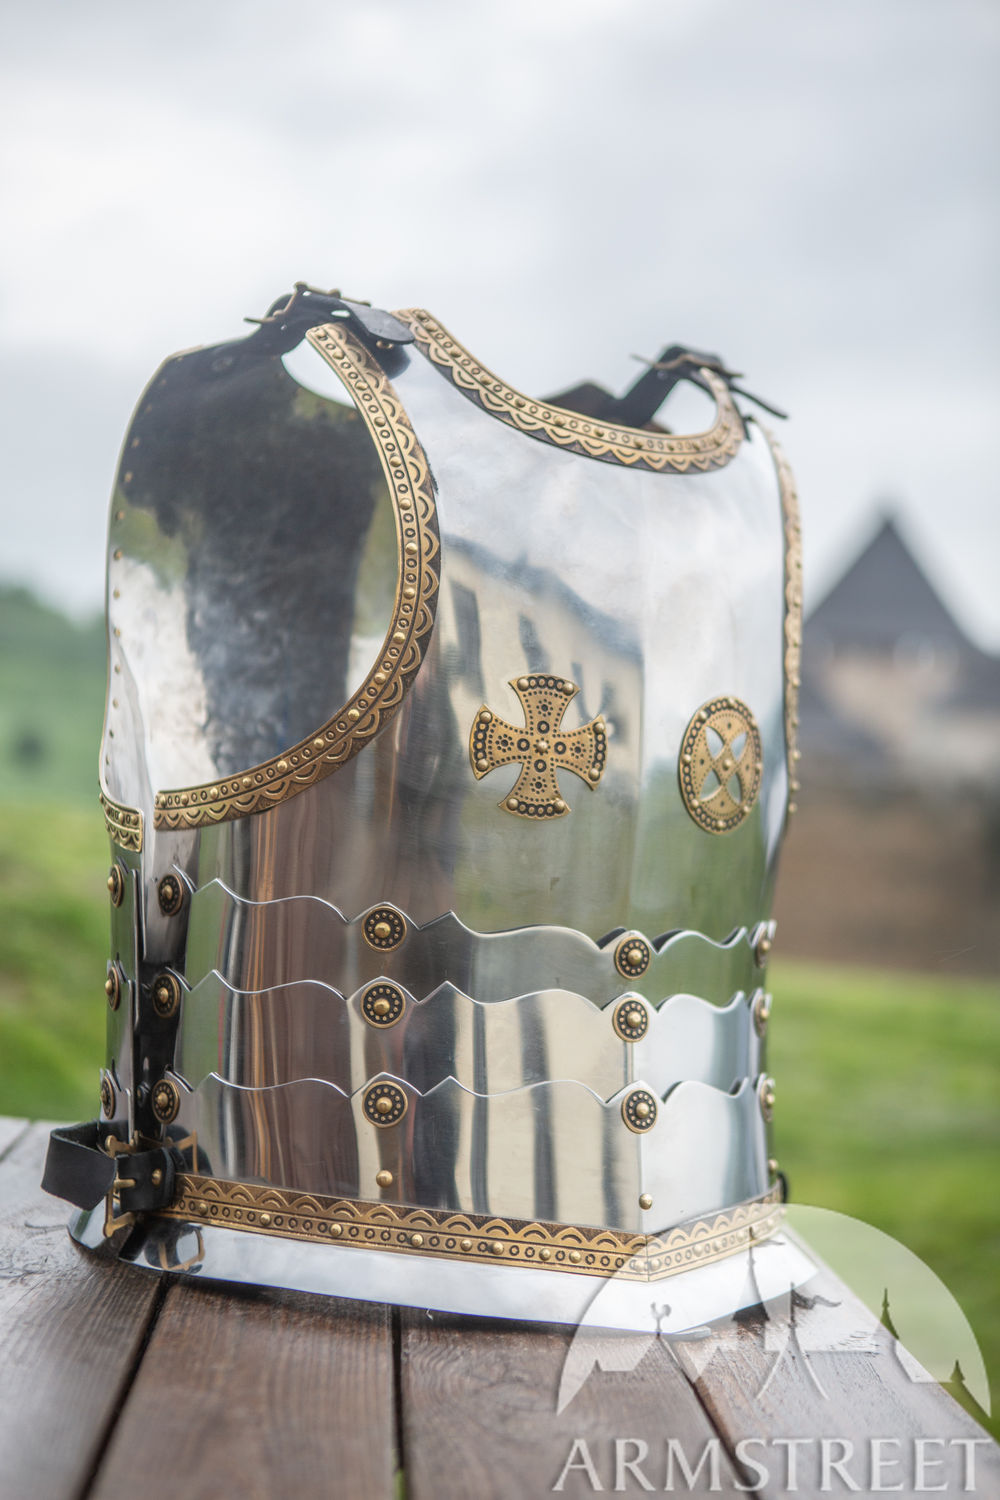 Polish Hussar articulated stainless steel cuirass with brass accents